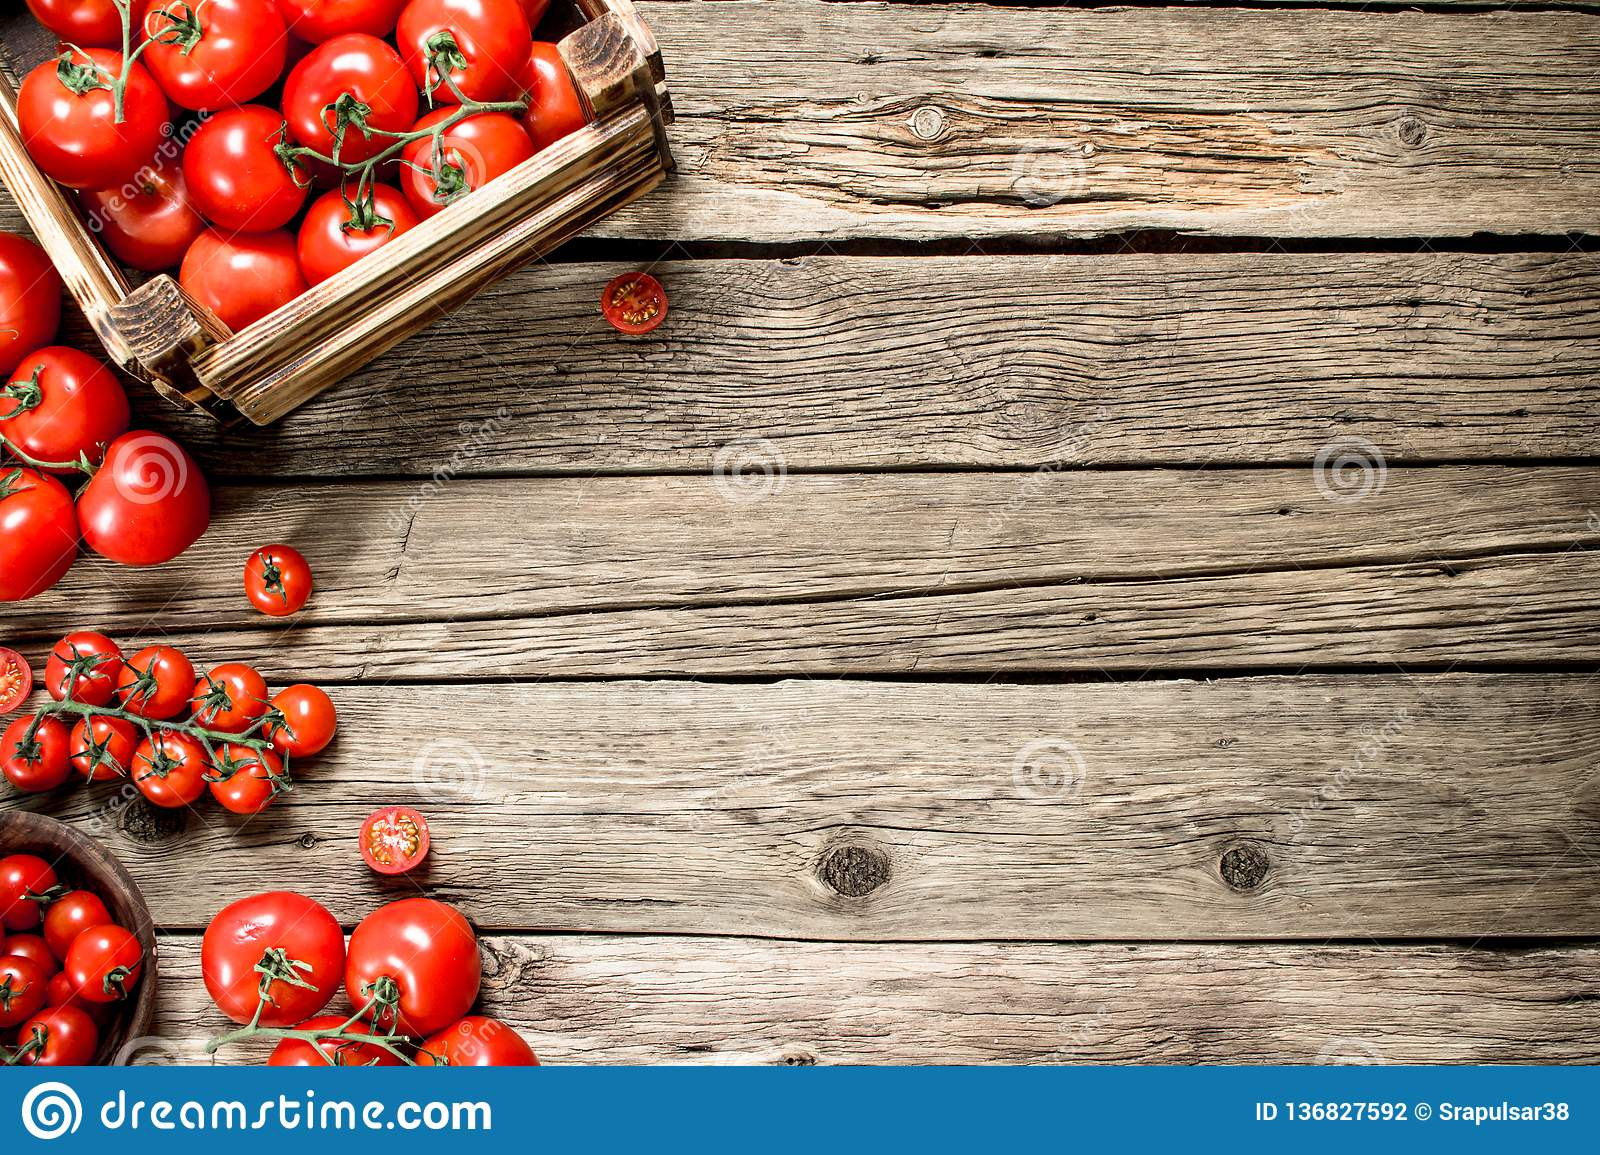 Ripe tomatoes in a wooden box